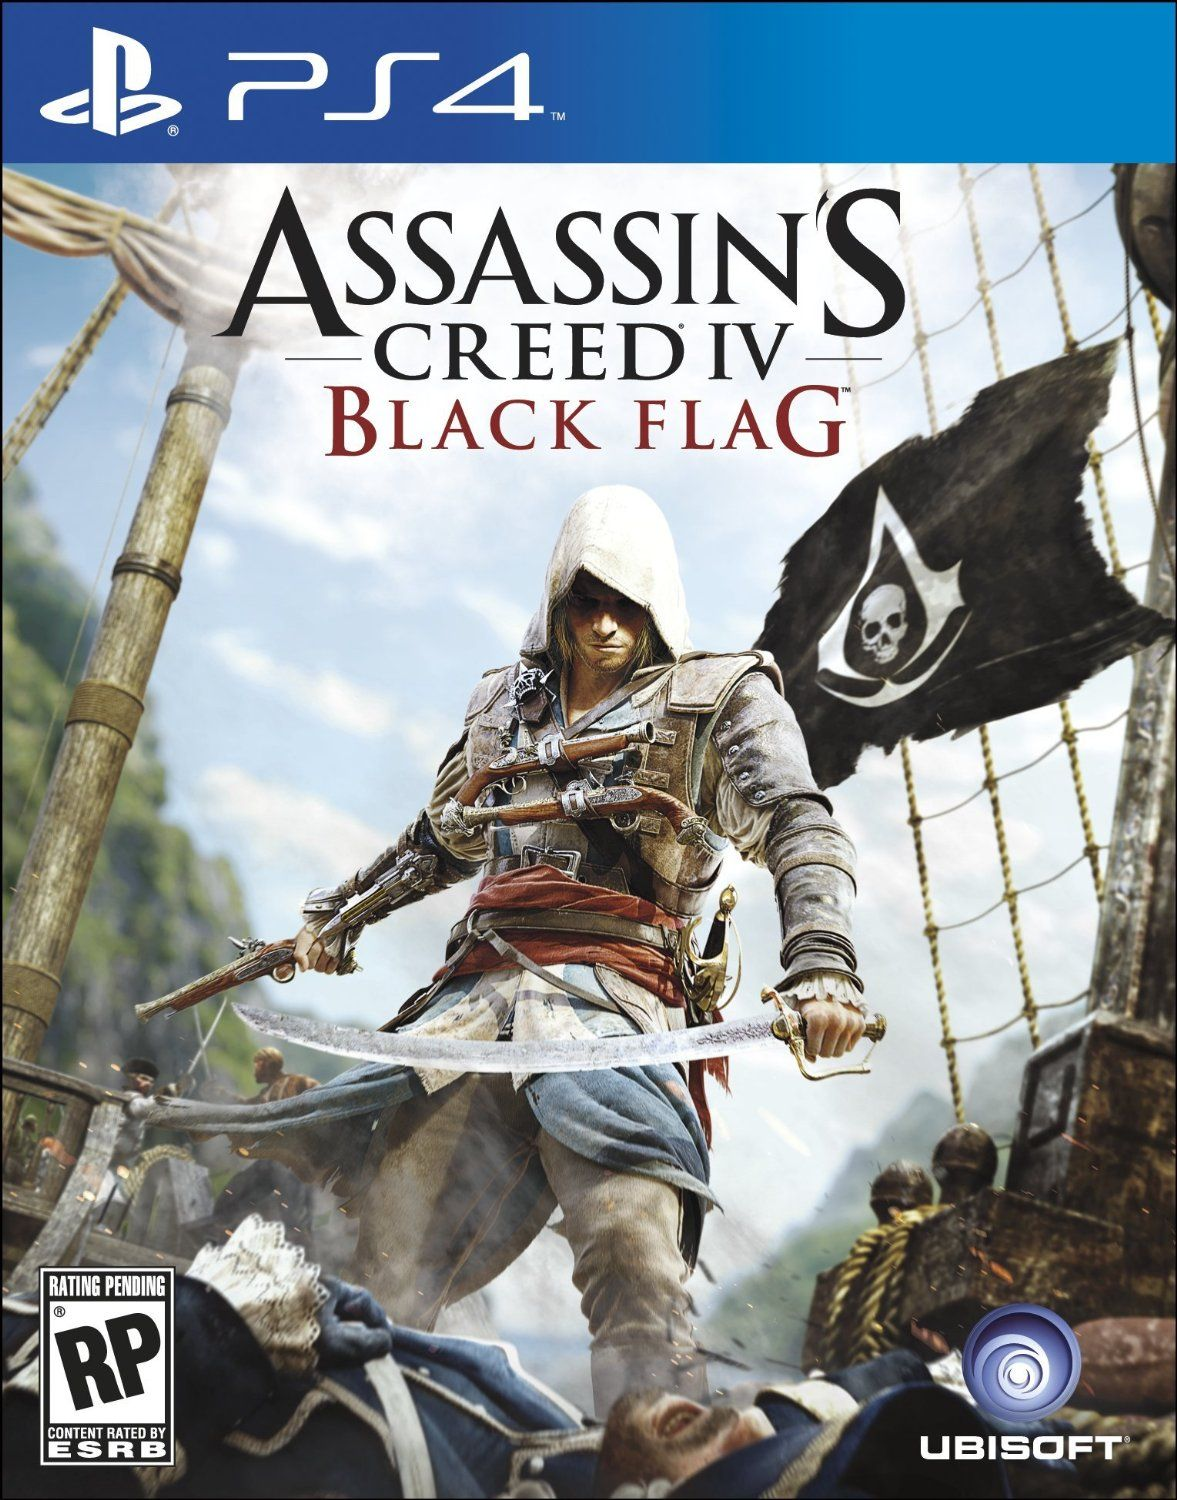 Pin By Supersmash44 On Video Games Assassins Creed Black Flag Assassin S Creed Black Black Flag